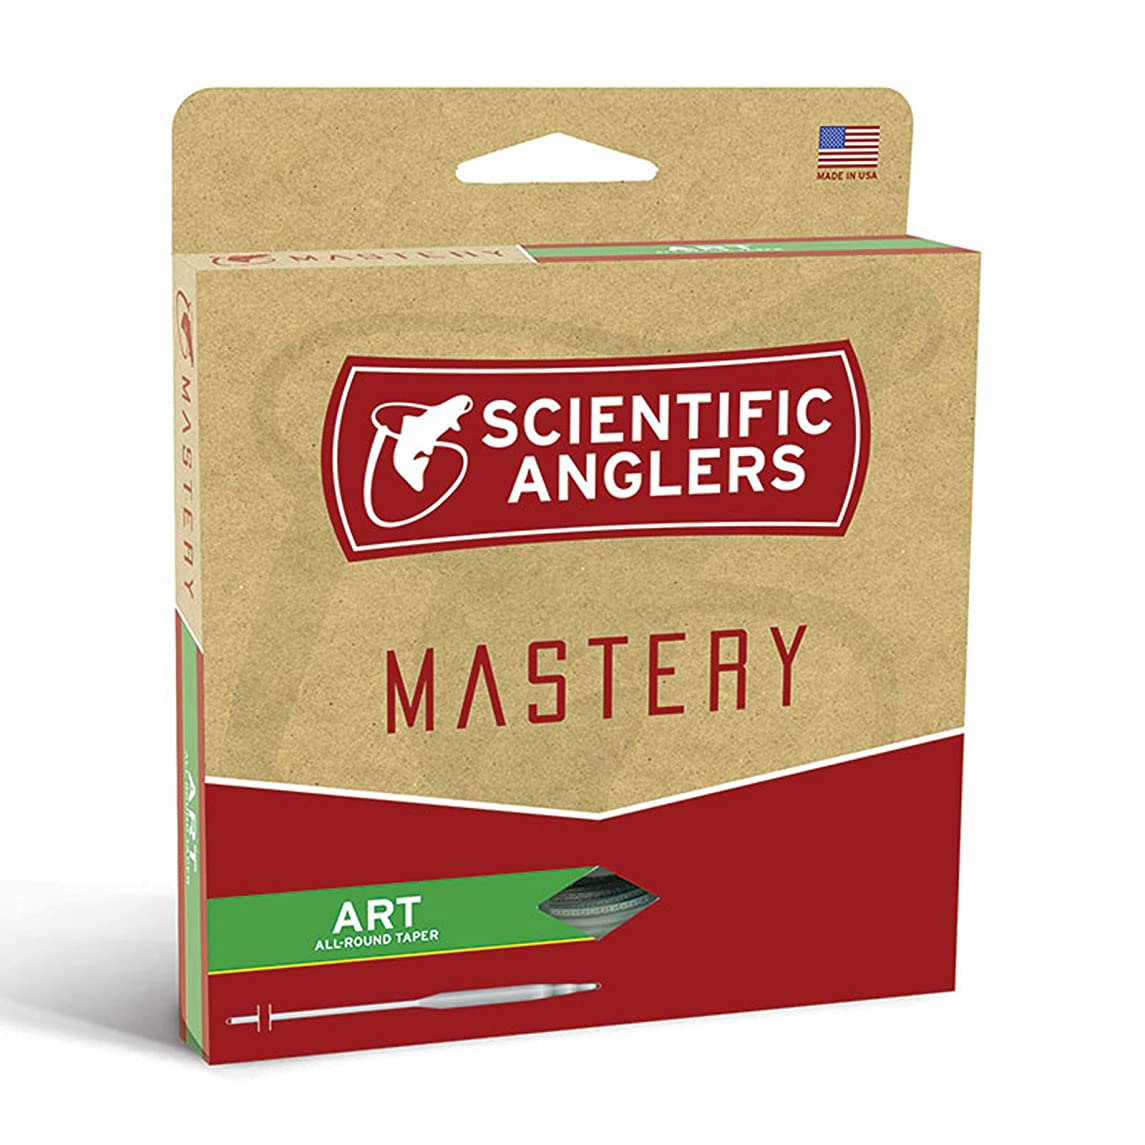 Scientific Anglers Mastery Art (All-Round Taper) Fly Line WF6F